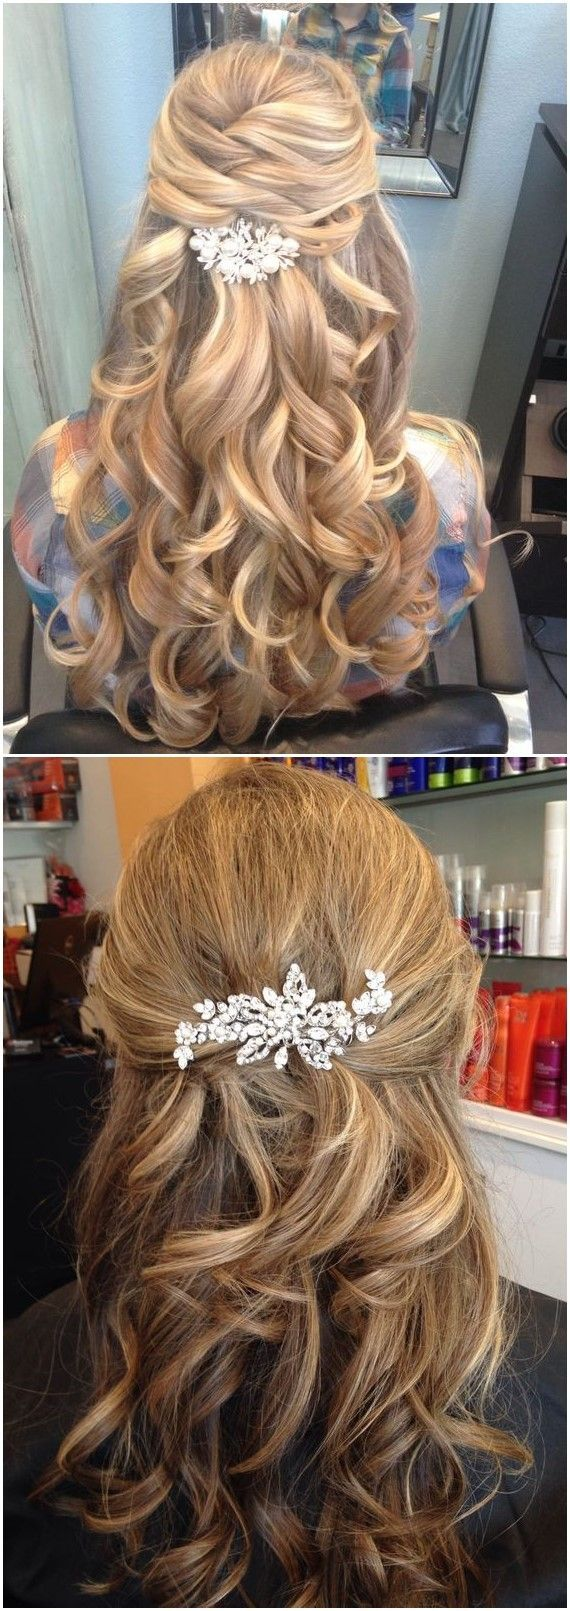 half up and half down wedding hairstyles to get you inspired